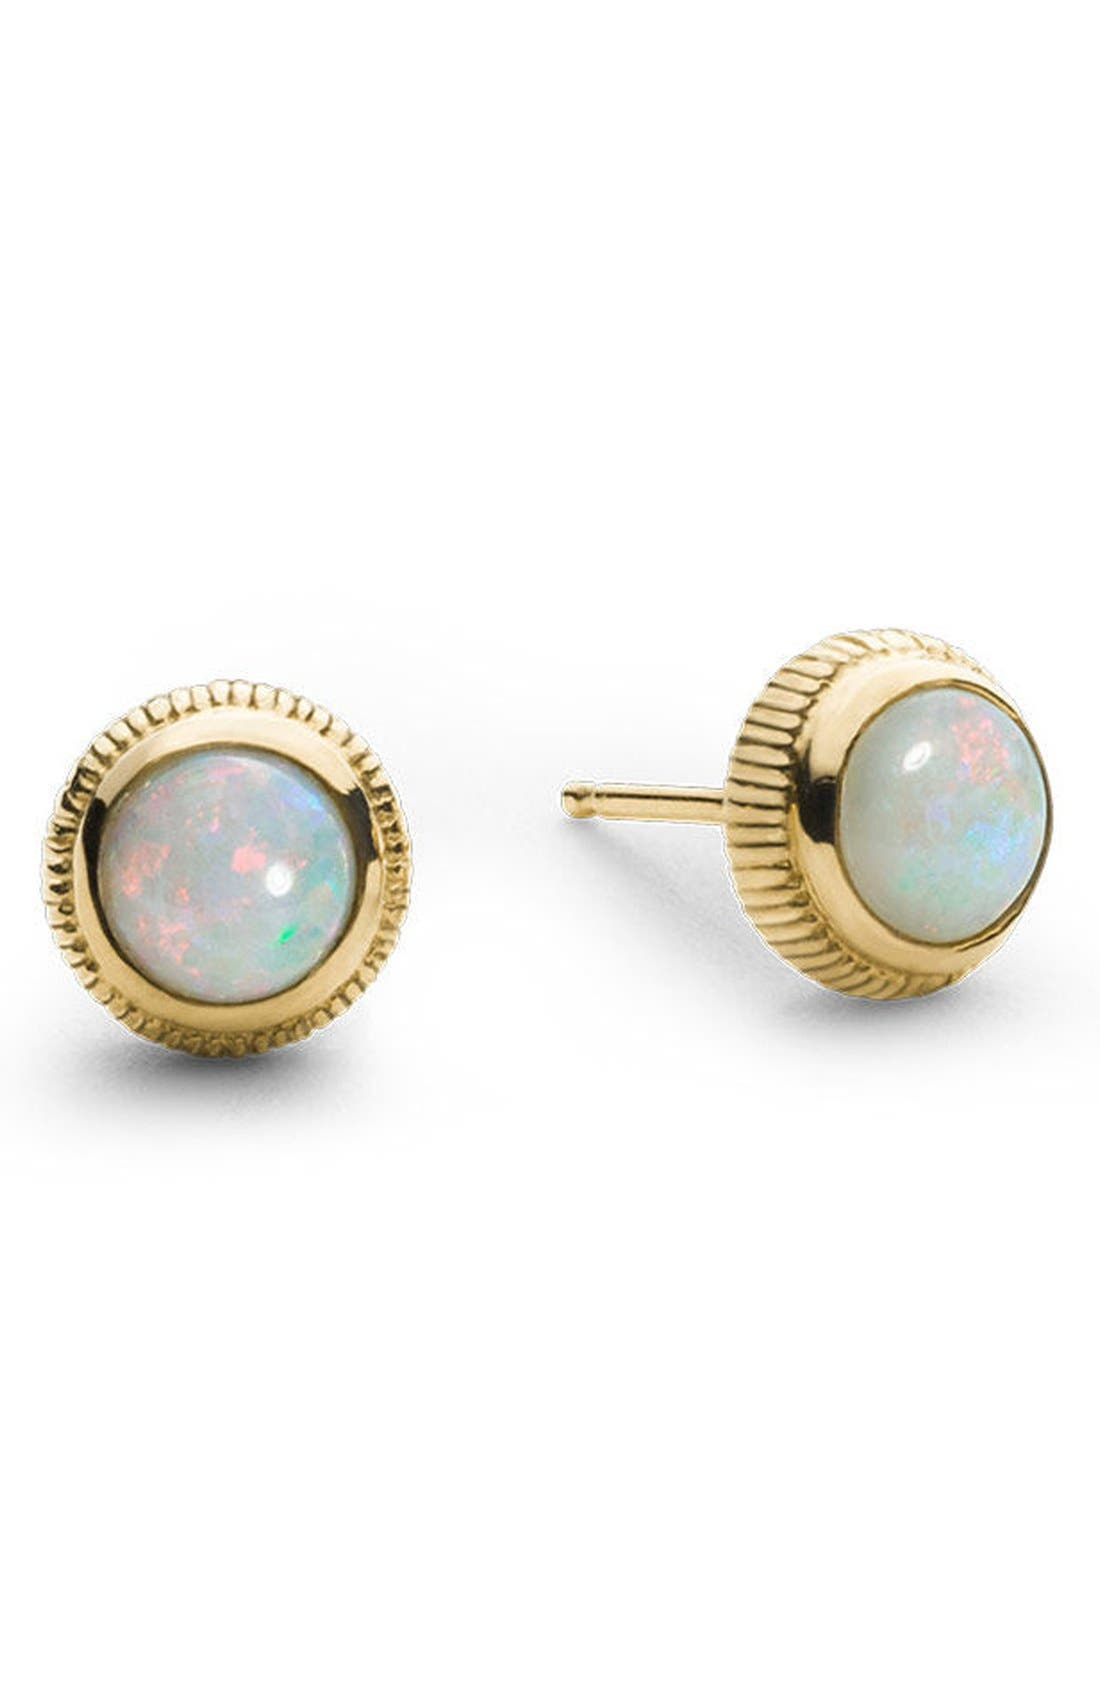 Alternate Image 1 Selected - Shinola Opal Stud Earrings